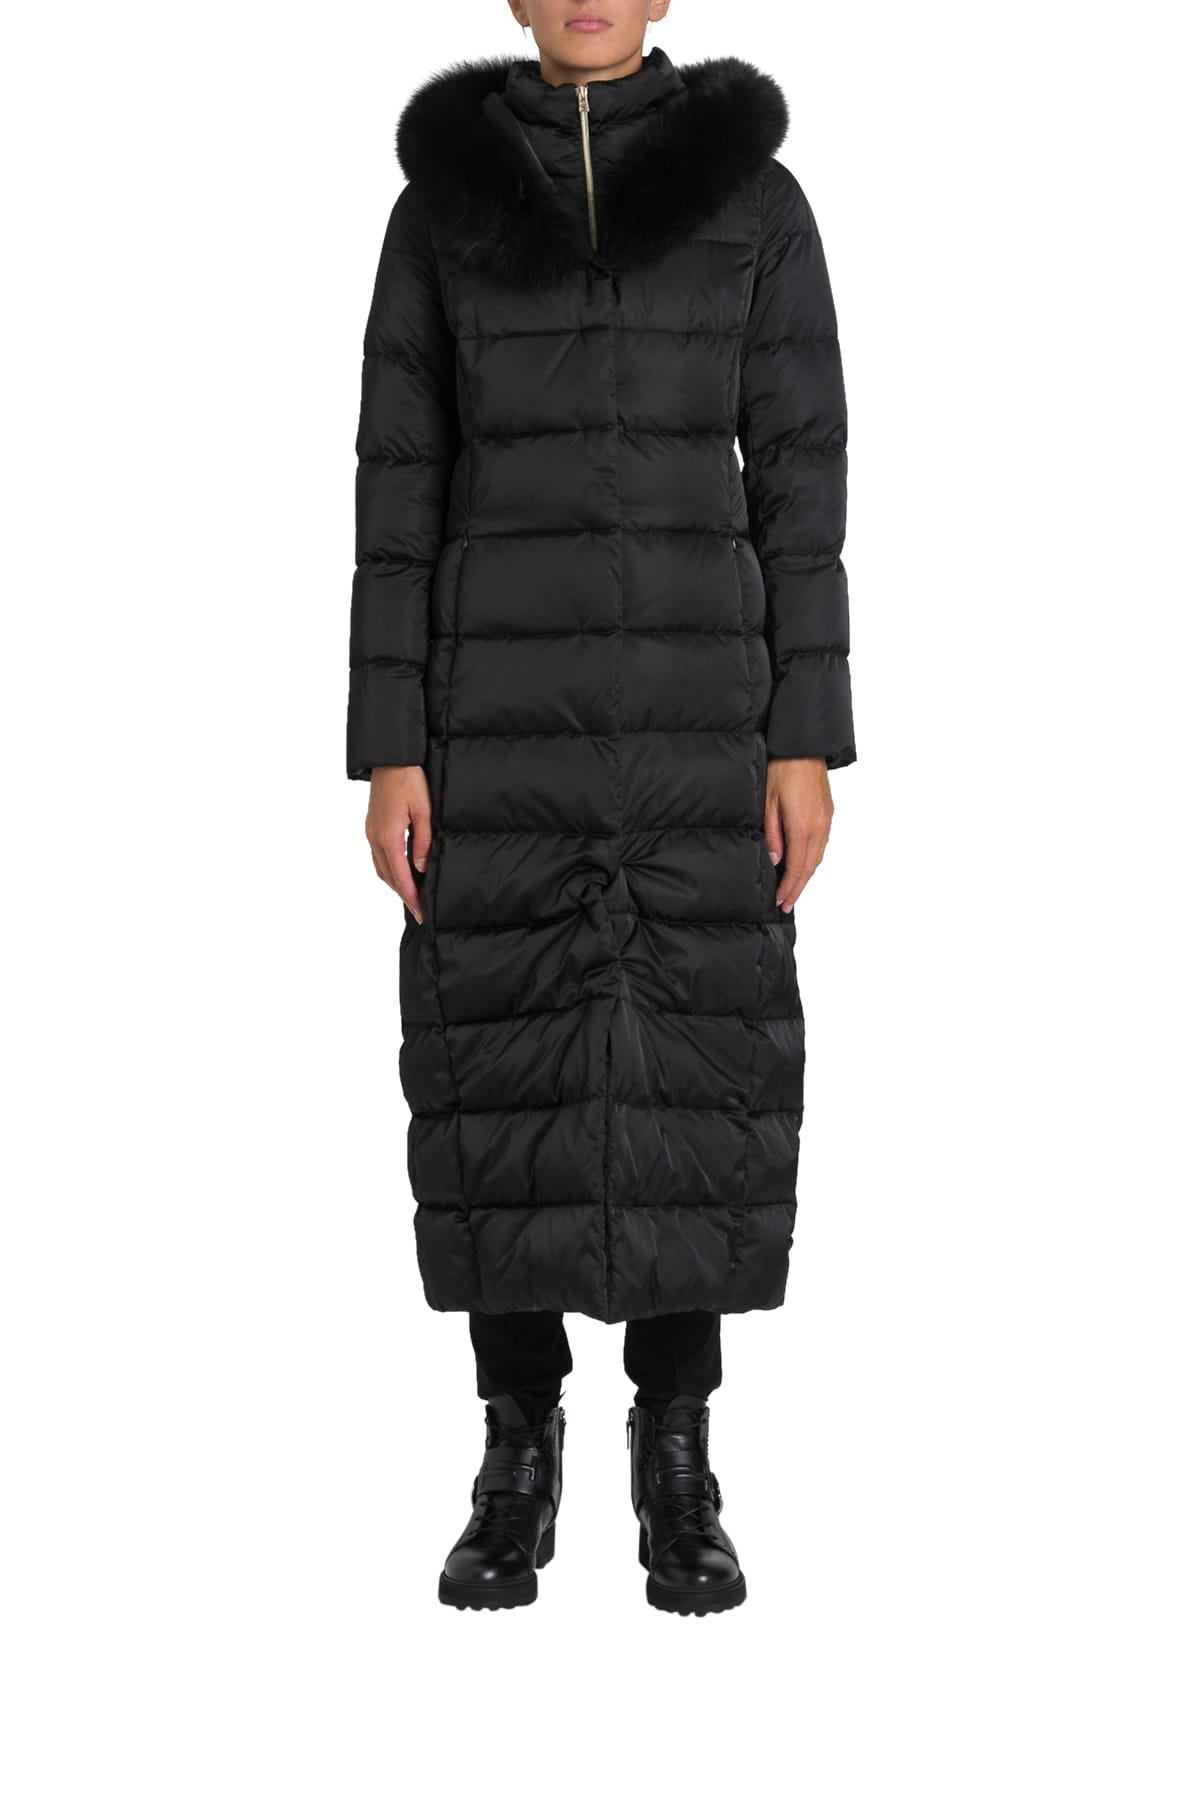 Herno Forx Trimming Hodded Long Padded Coat